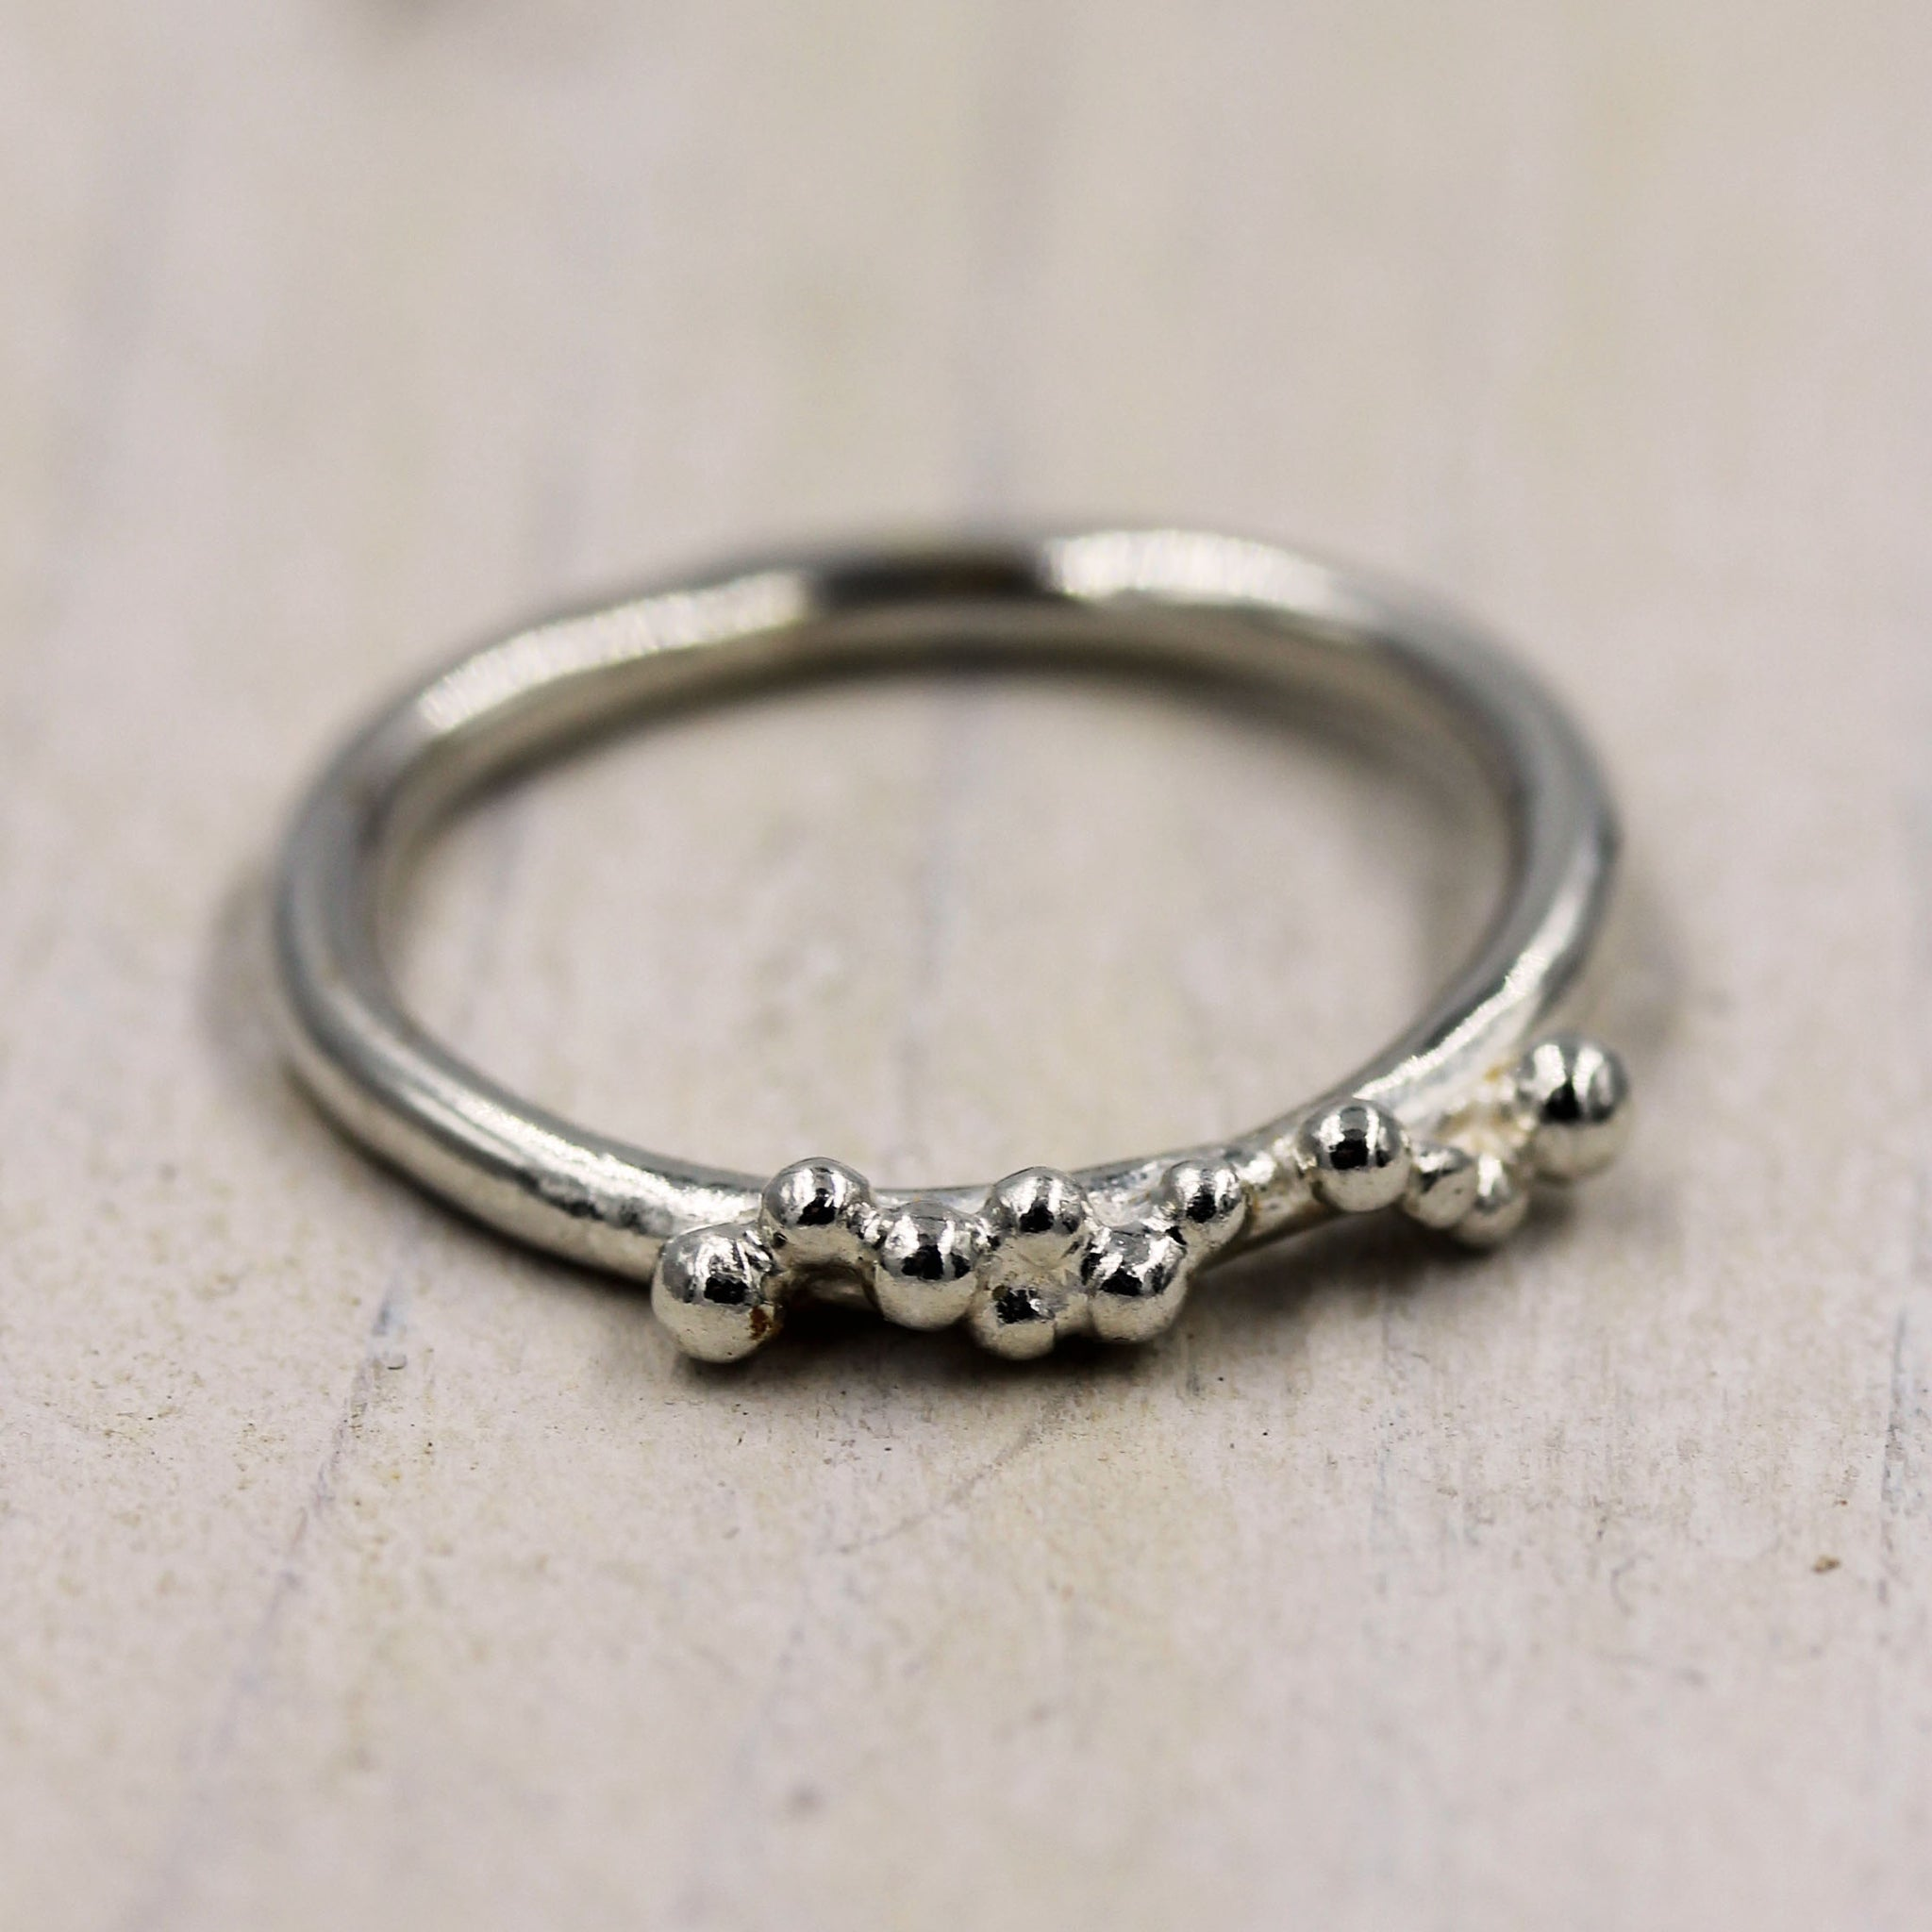 Grains of sand ring, handmade in eco friendly silver, by Gemma Tremayne Jewellery